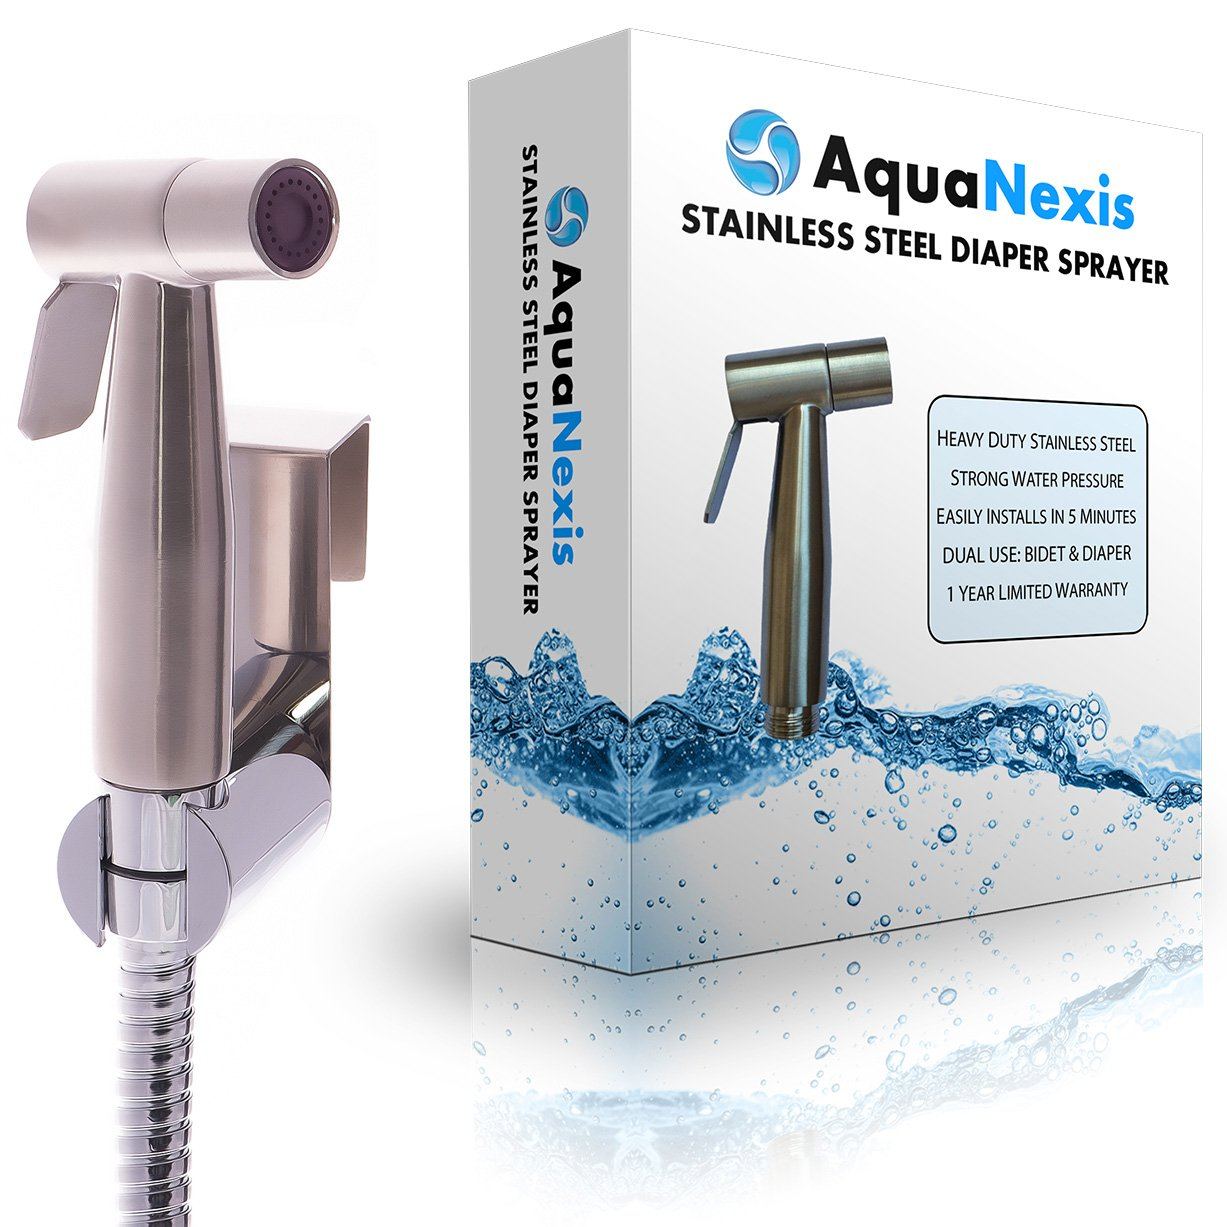 Premium Stainless Steel Bathroom Handheld Bidet Toilet Sprayer - Shattaf Sprayer Best Used for Personal Hygiene and Potty Toilet Spray - Perfect Bottom Cleaner Spray & Shower Attachment, by Aqua Nexis